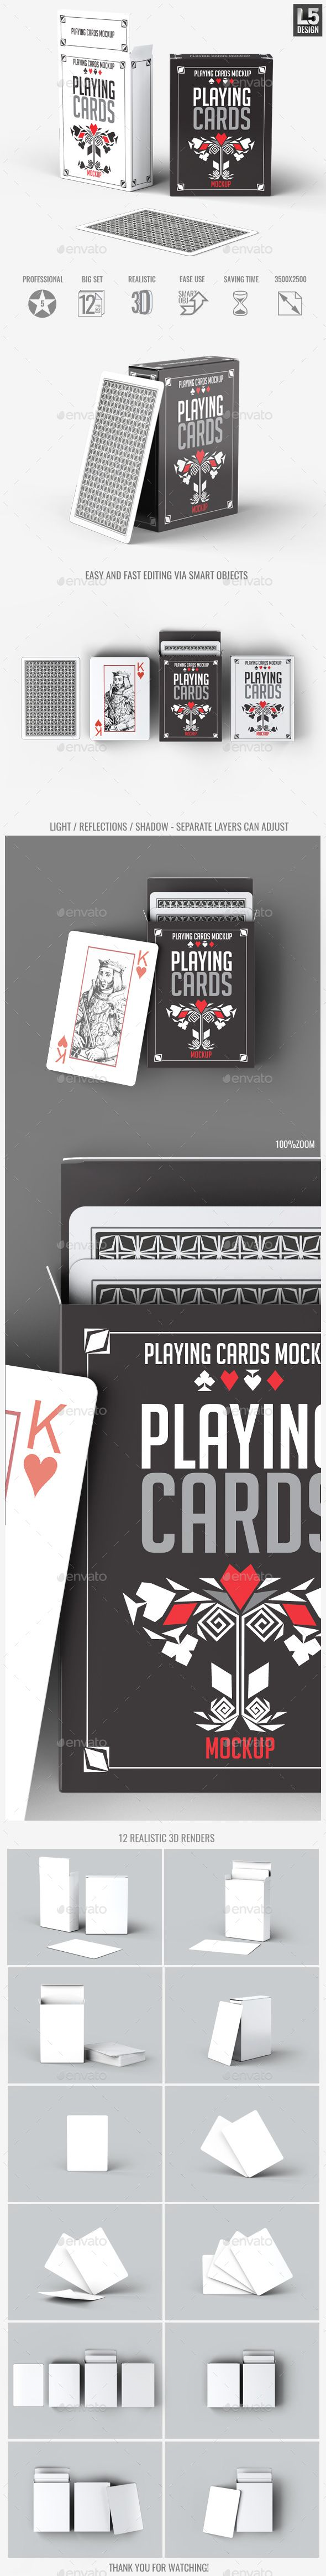 Best 25 Playing card box ideas on Pinterest